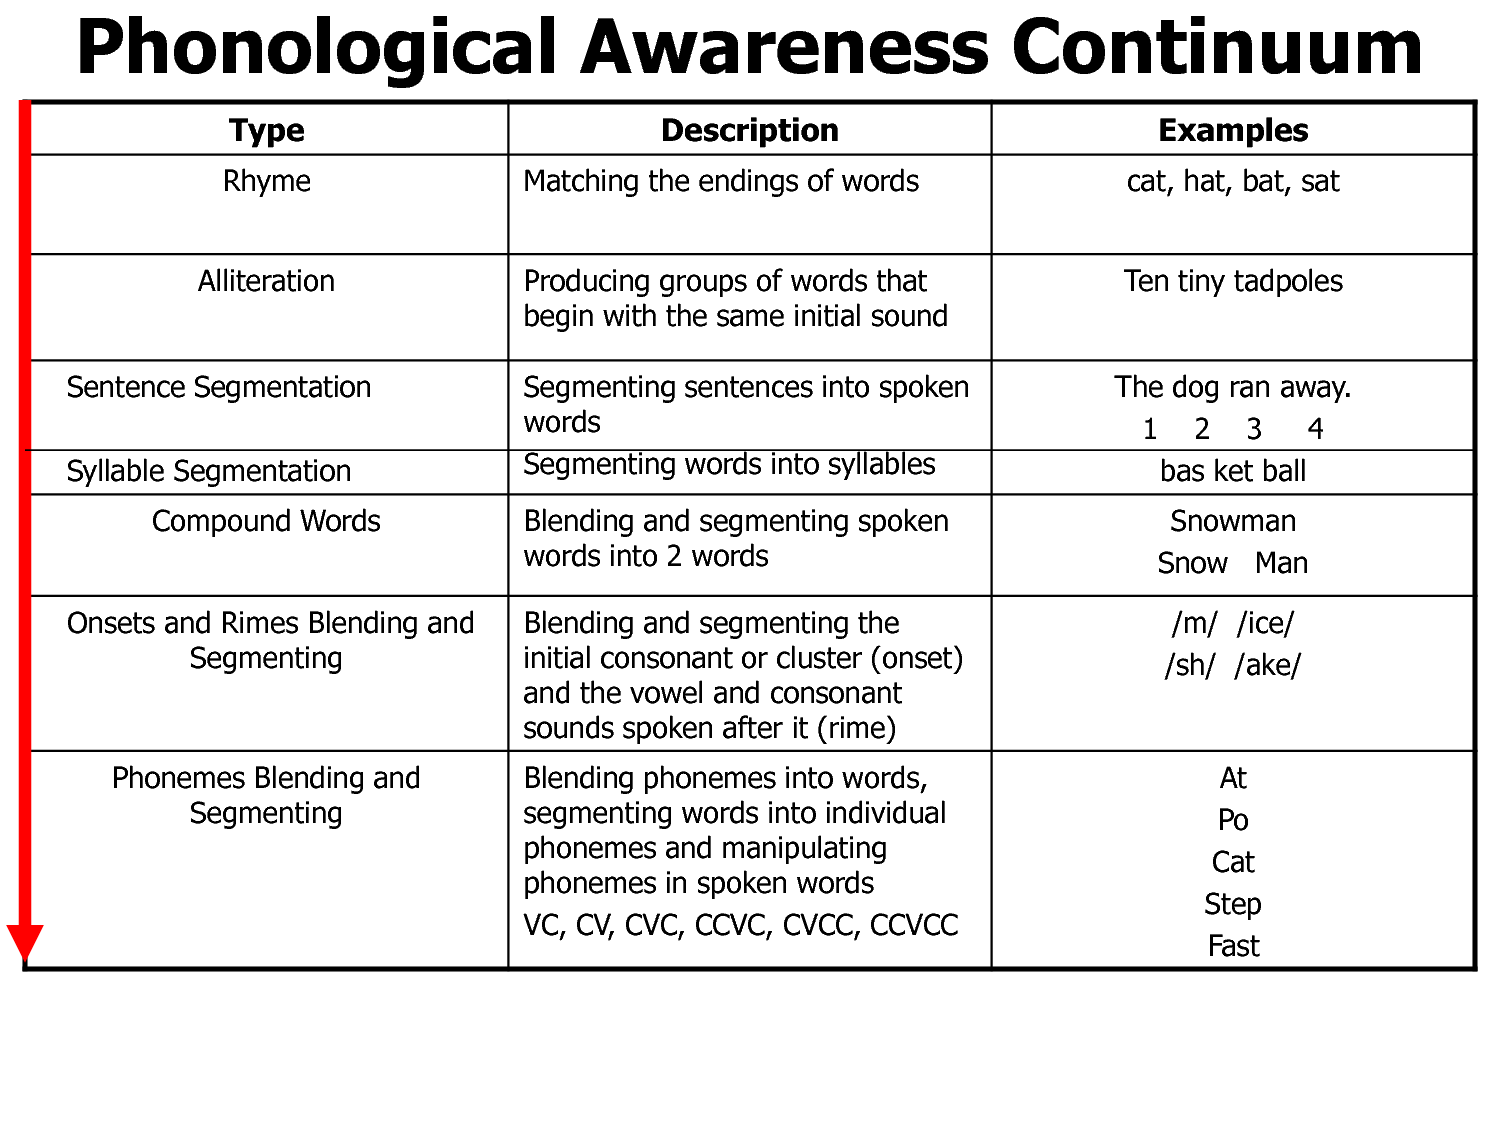 Phonological Awareness Continuum With Images